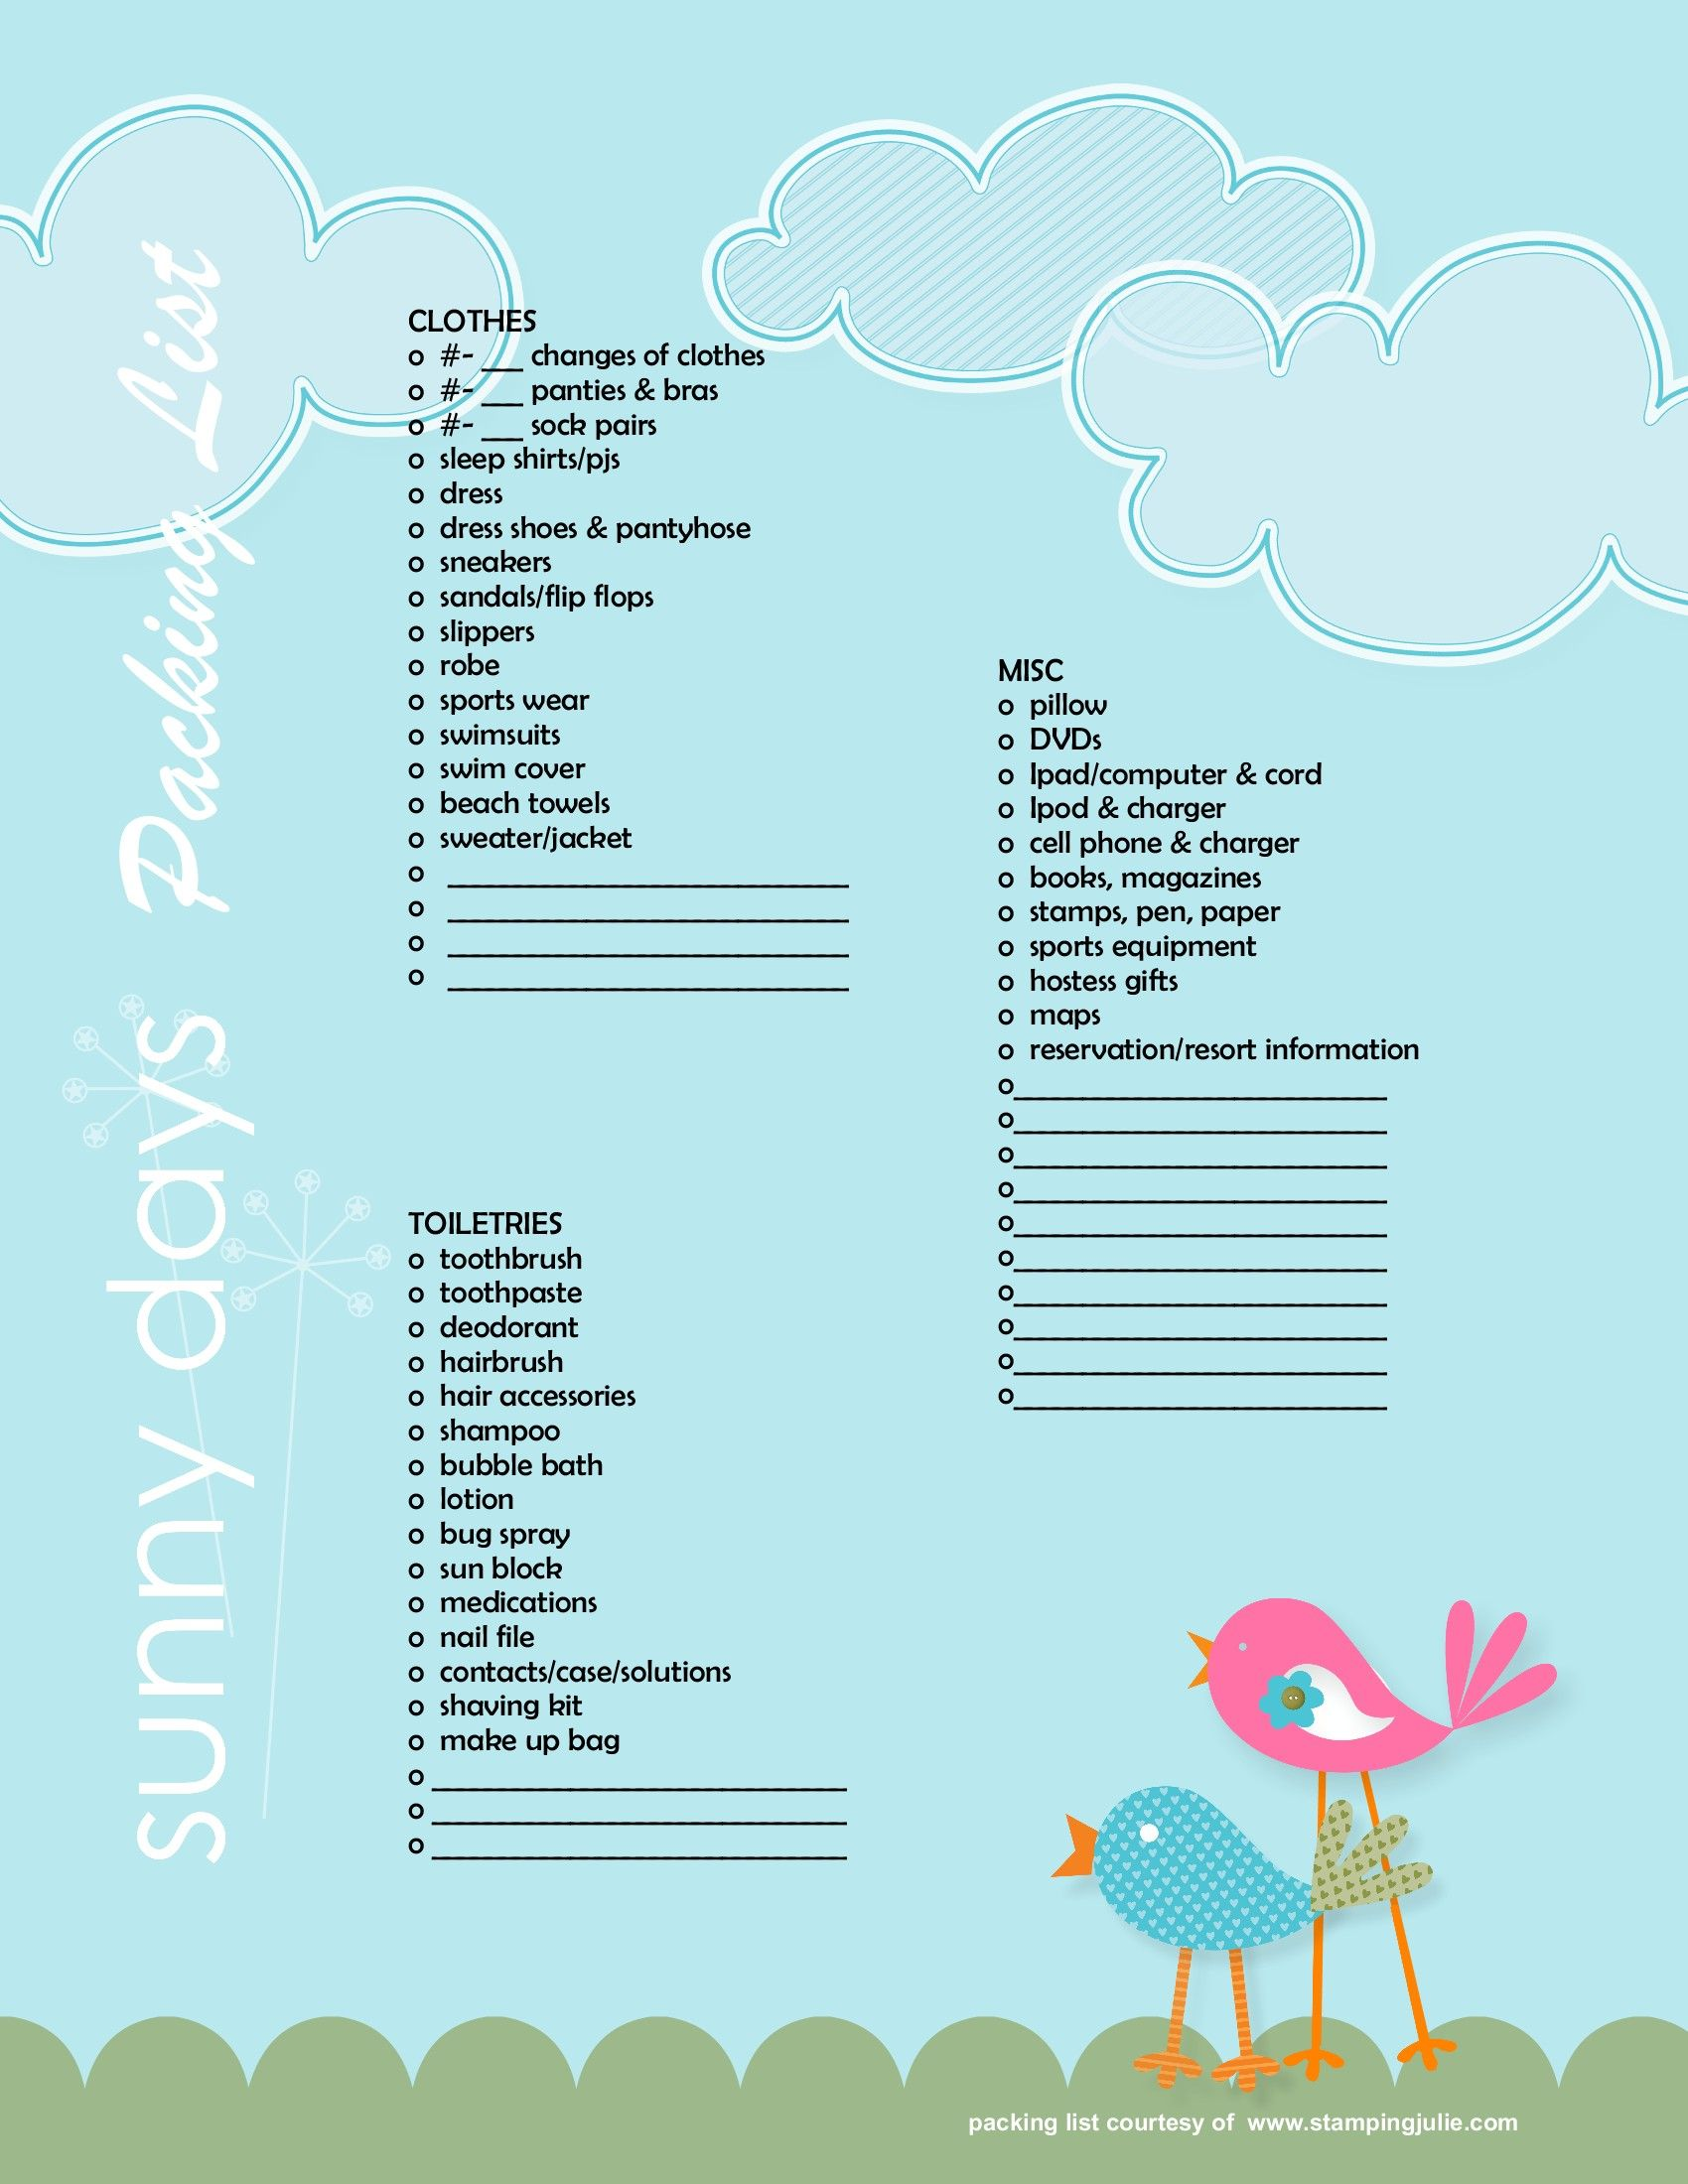 Sunny Day What To Pack Checklist For Beach Vacay 8x11 Pages 004